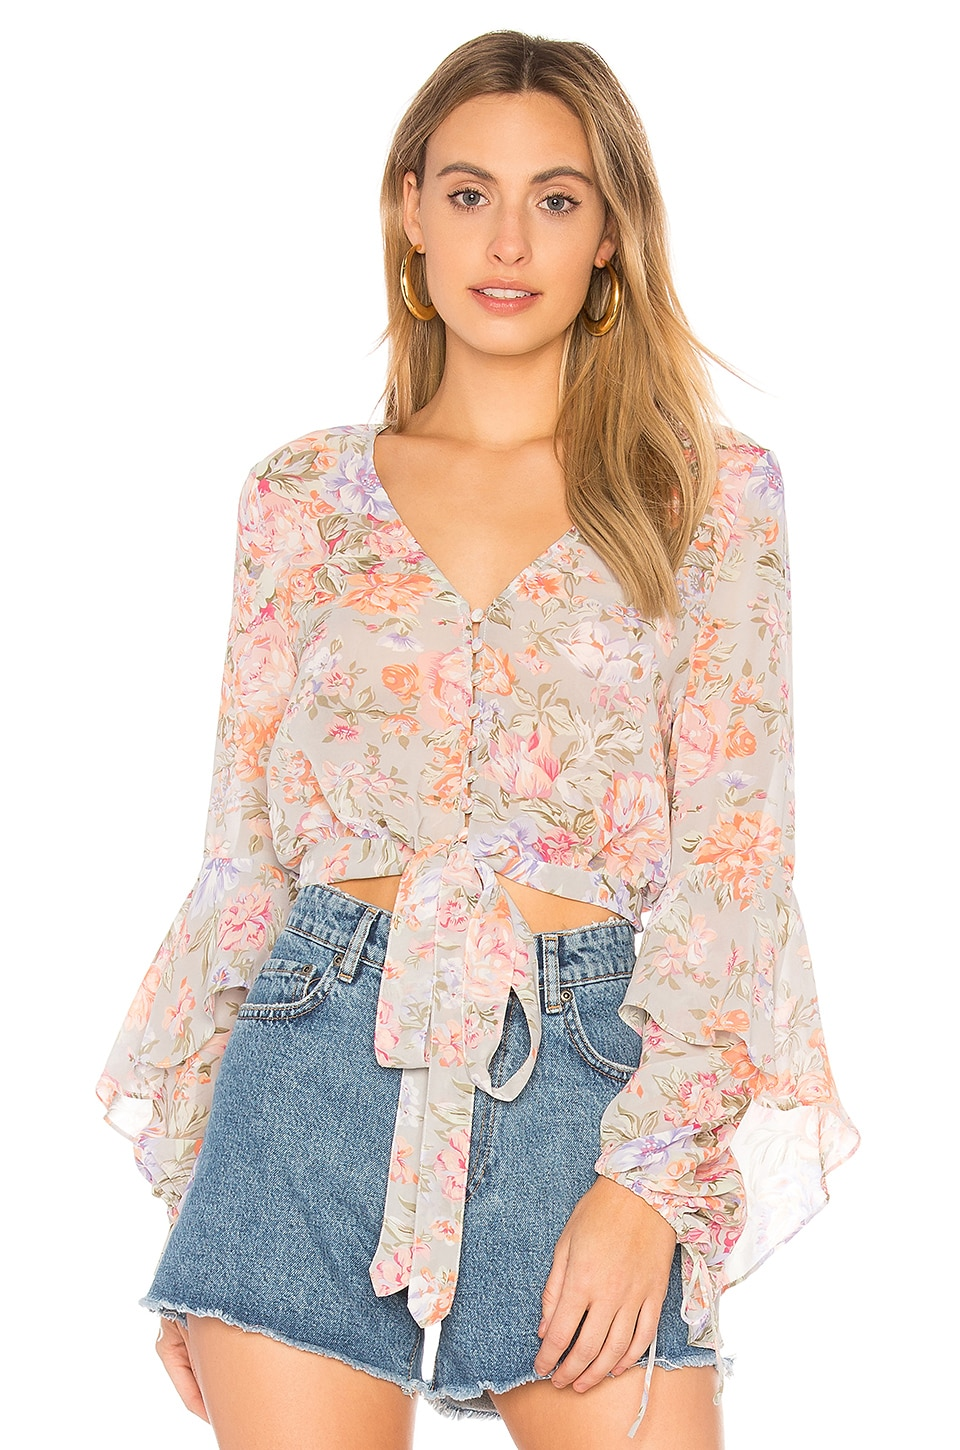 New Romance Poet Blouse by Auguste